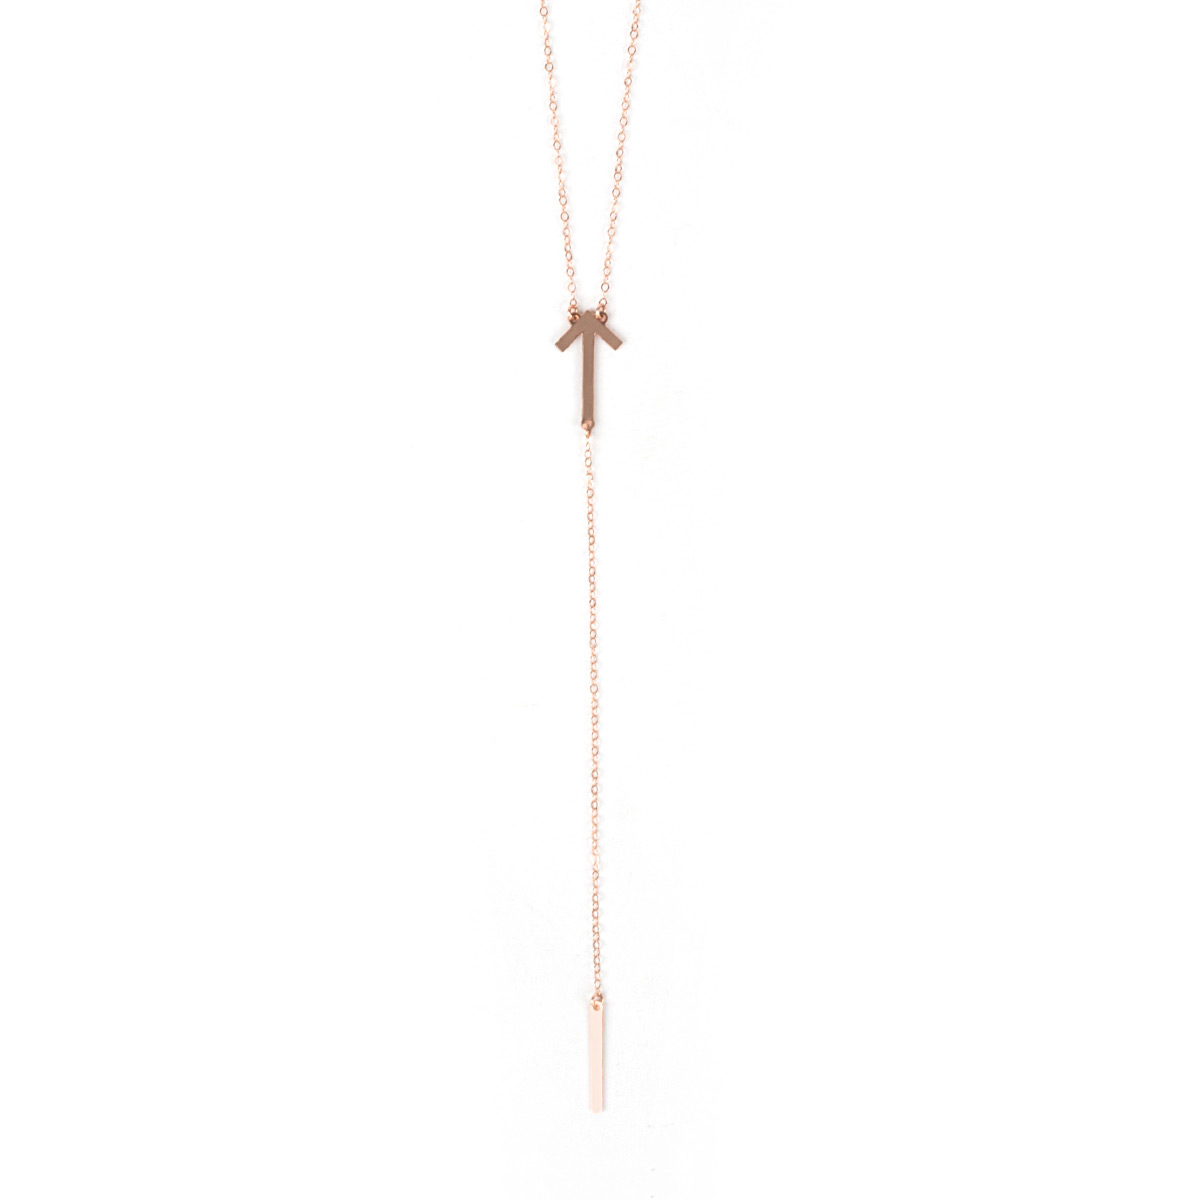 SU2C Stand Up Lariat Necklace (Rose Gold)